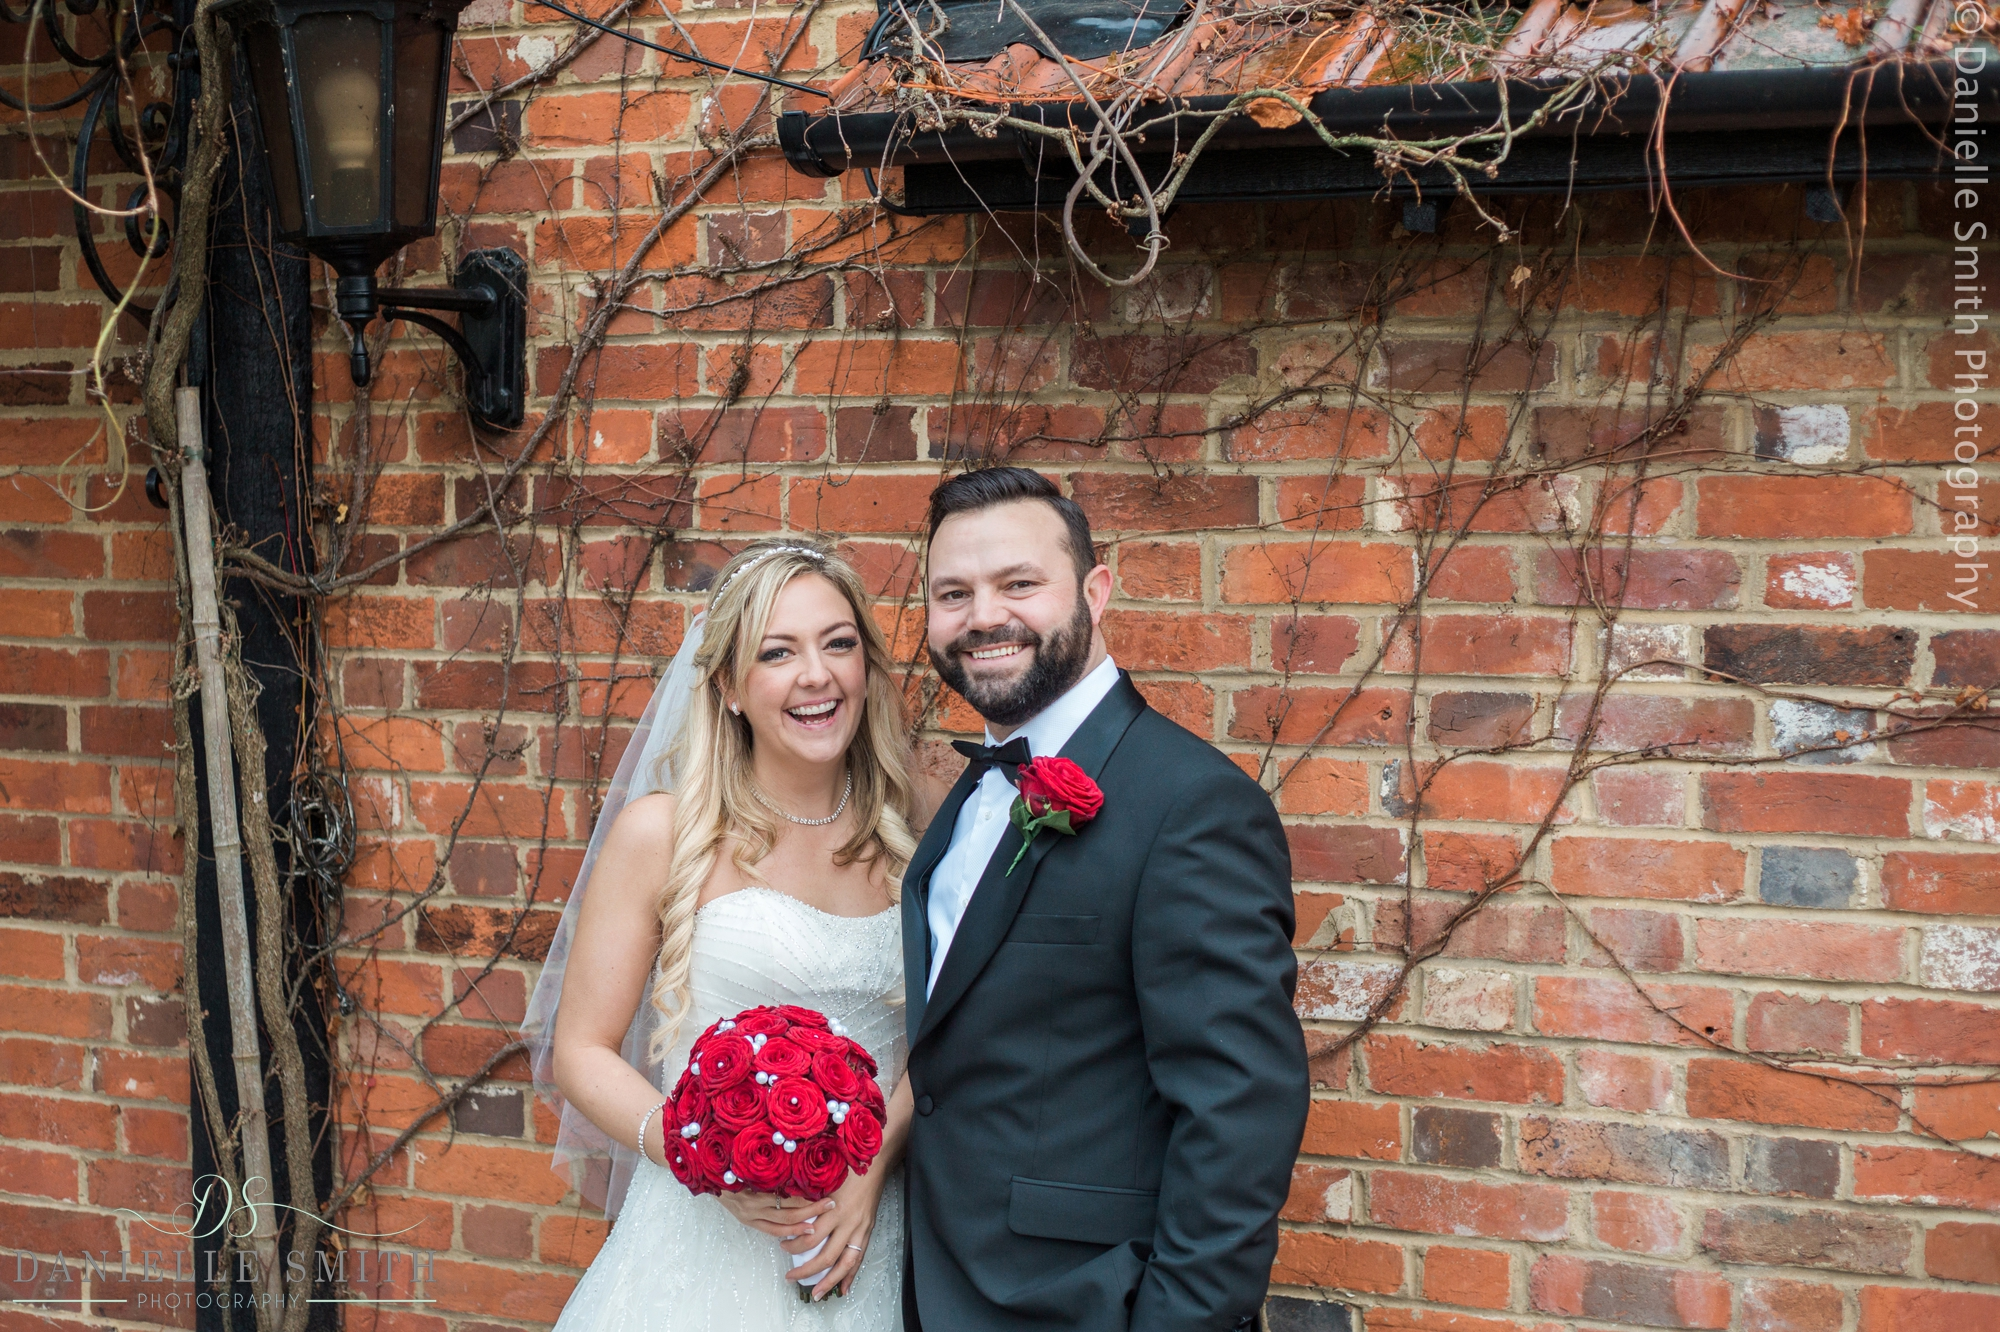 bride and groom with red rose bouquet